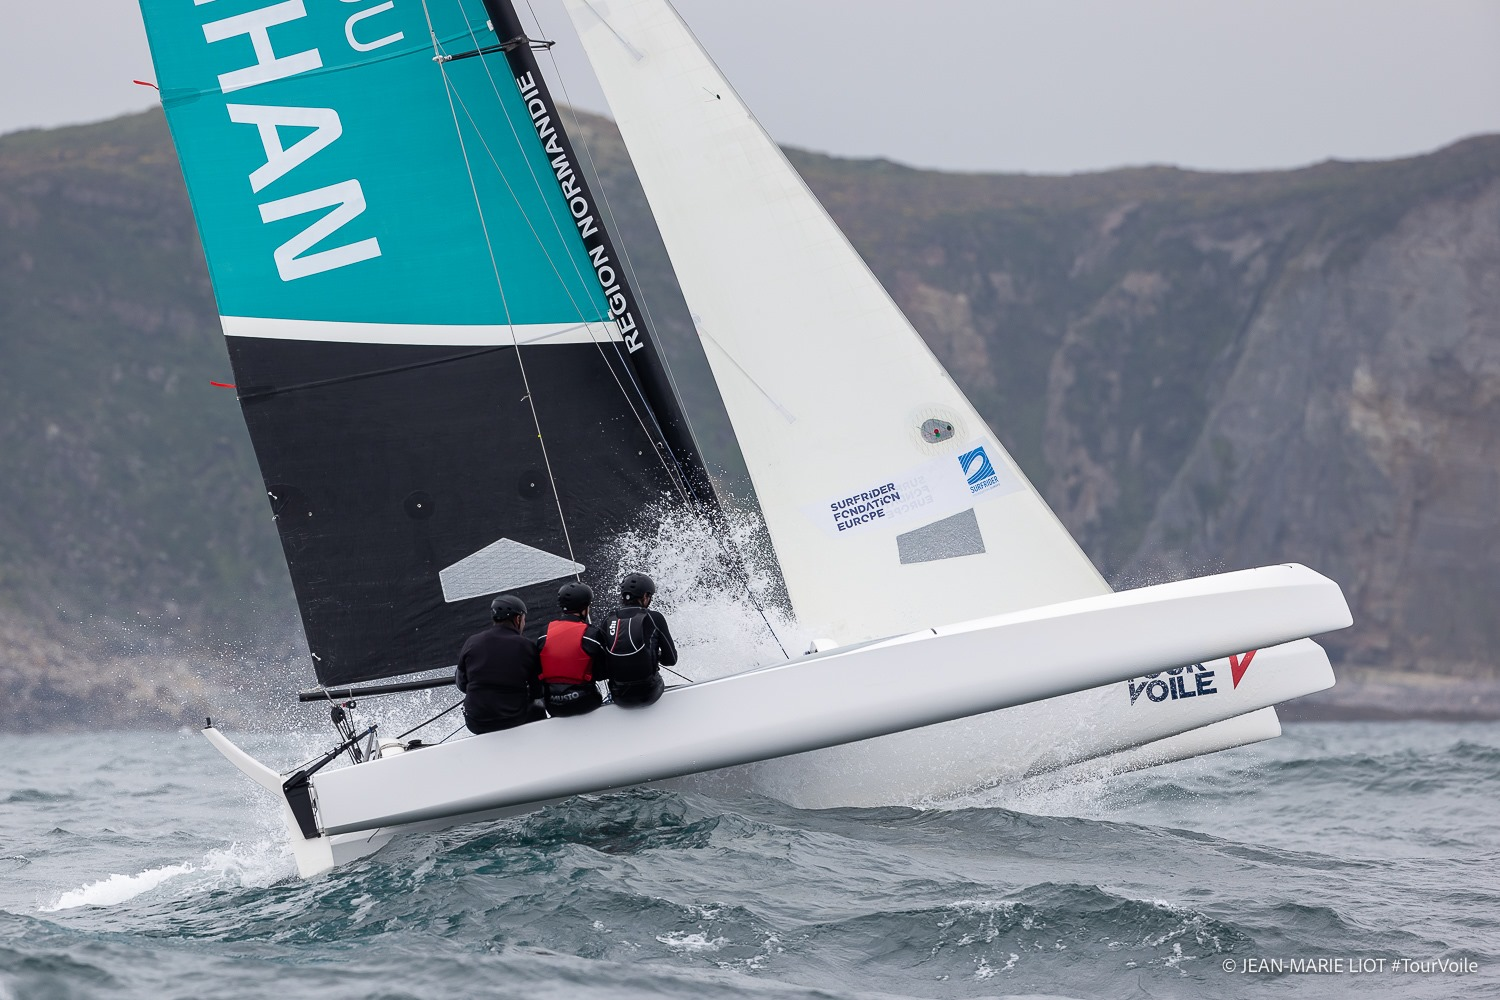 Boat making way upwind through choppy conditions